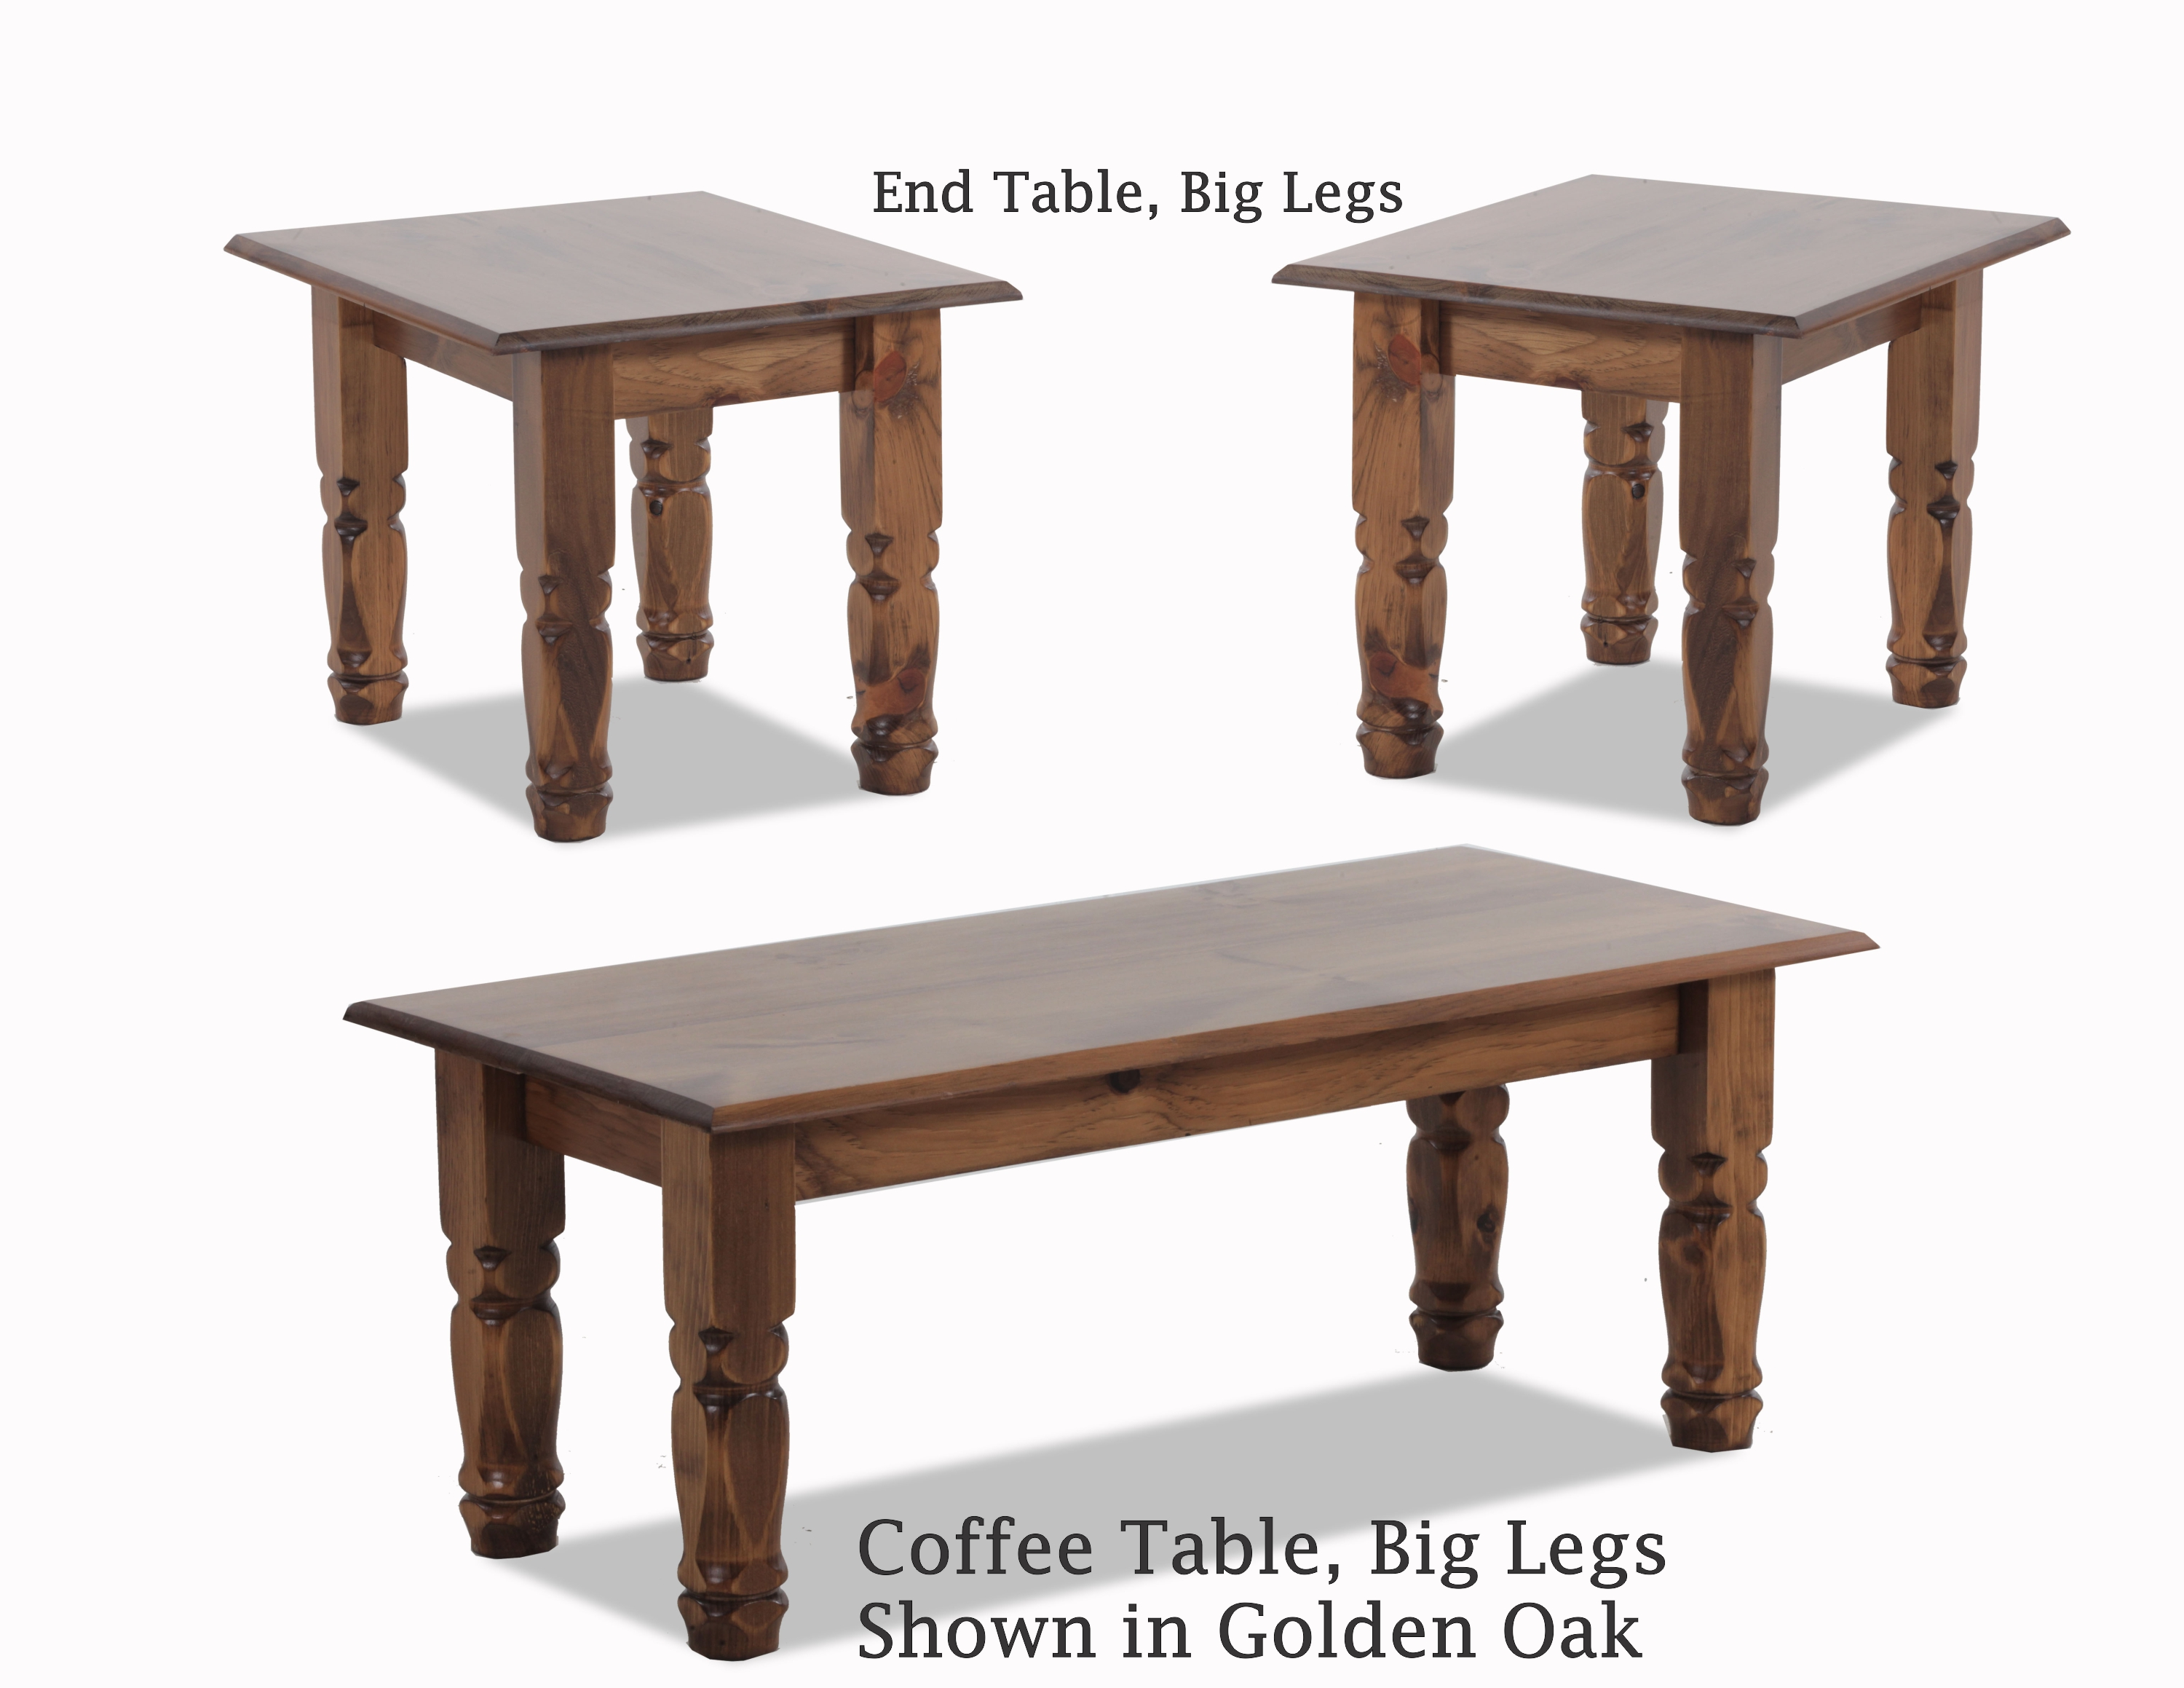 Oak End Tables And Coffee Coffee End Tables Big Legs Golden Oak Oak End Tables And Coffee